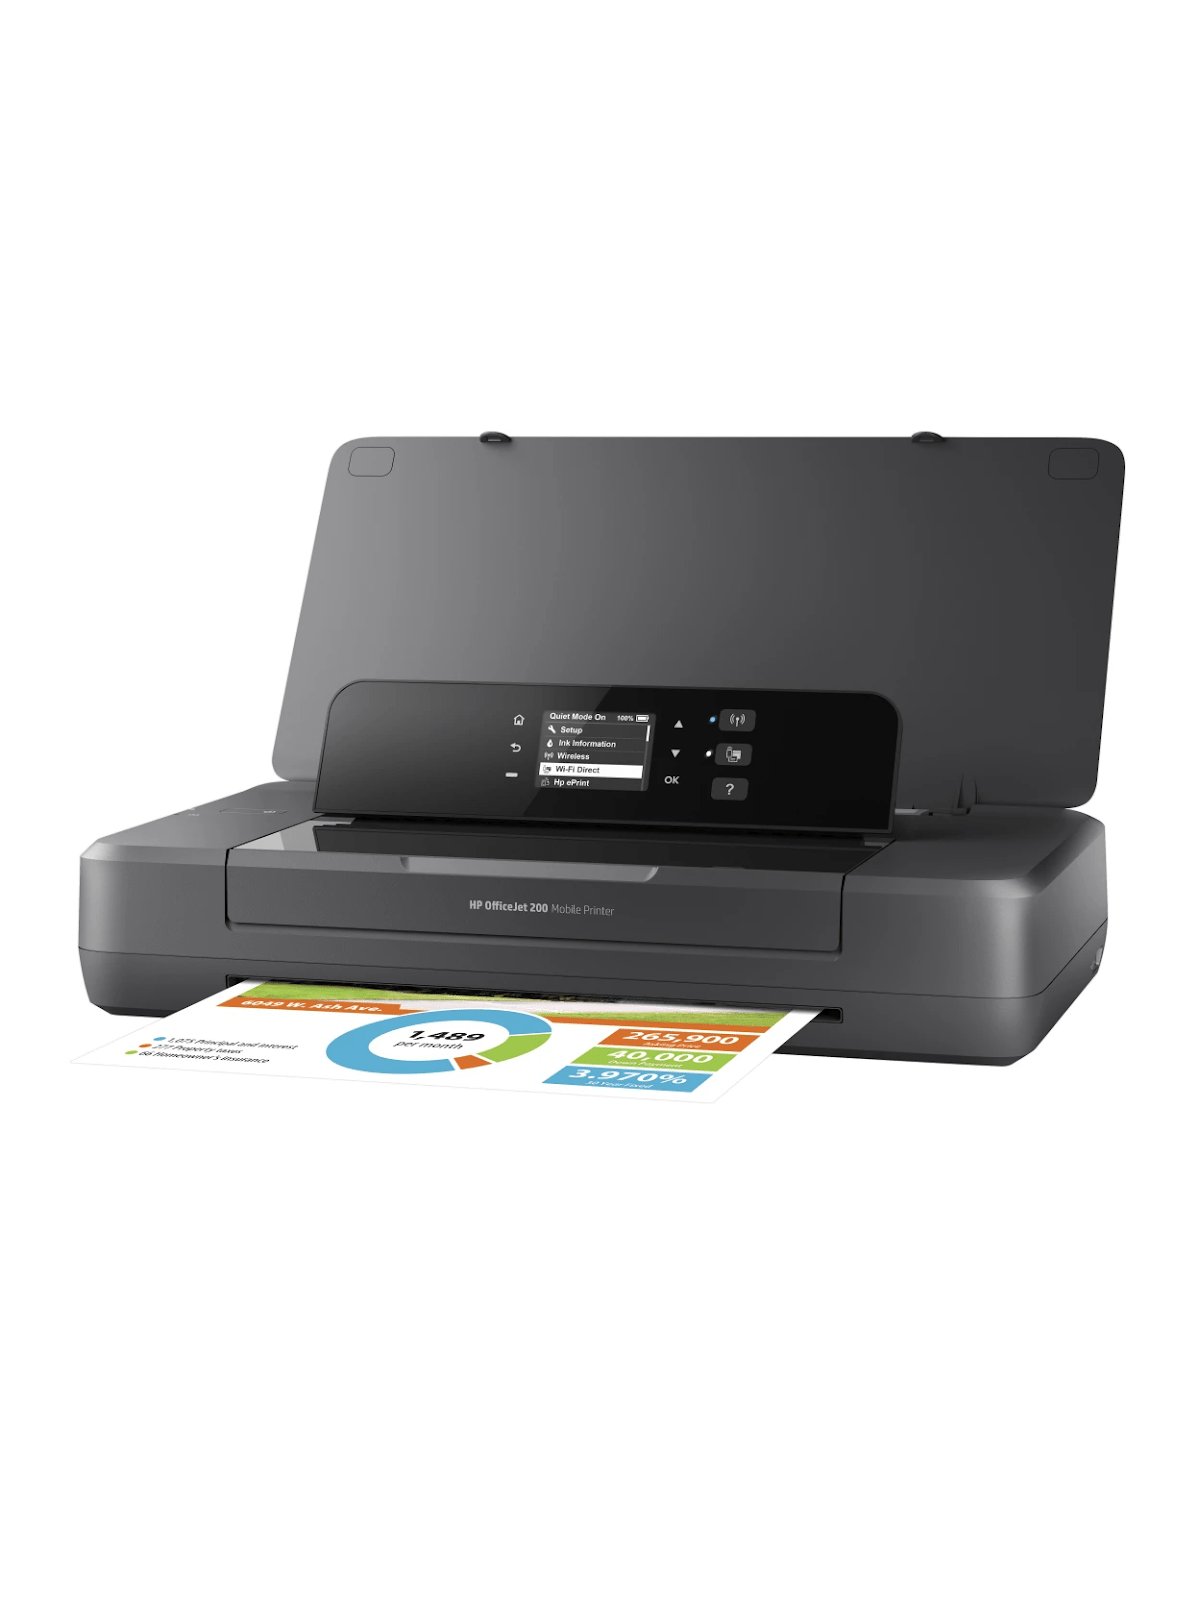 HP Officejet 200 Portable Wireless Color Printer - Office Depot